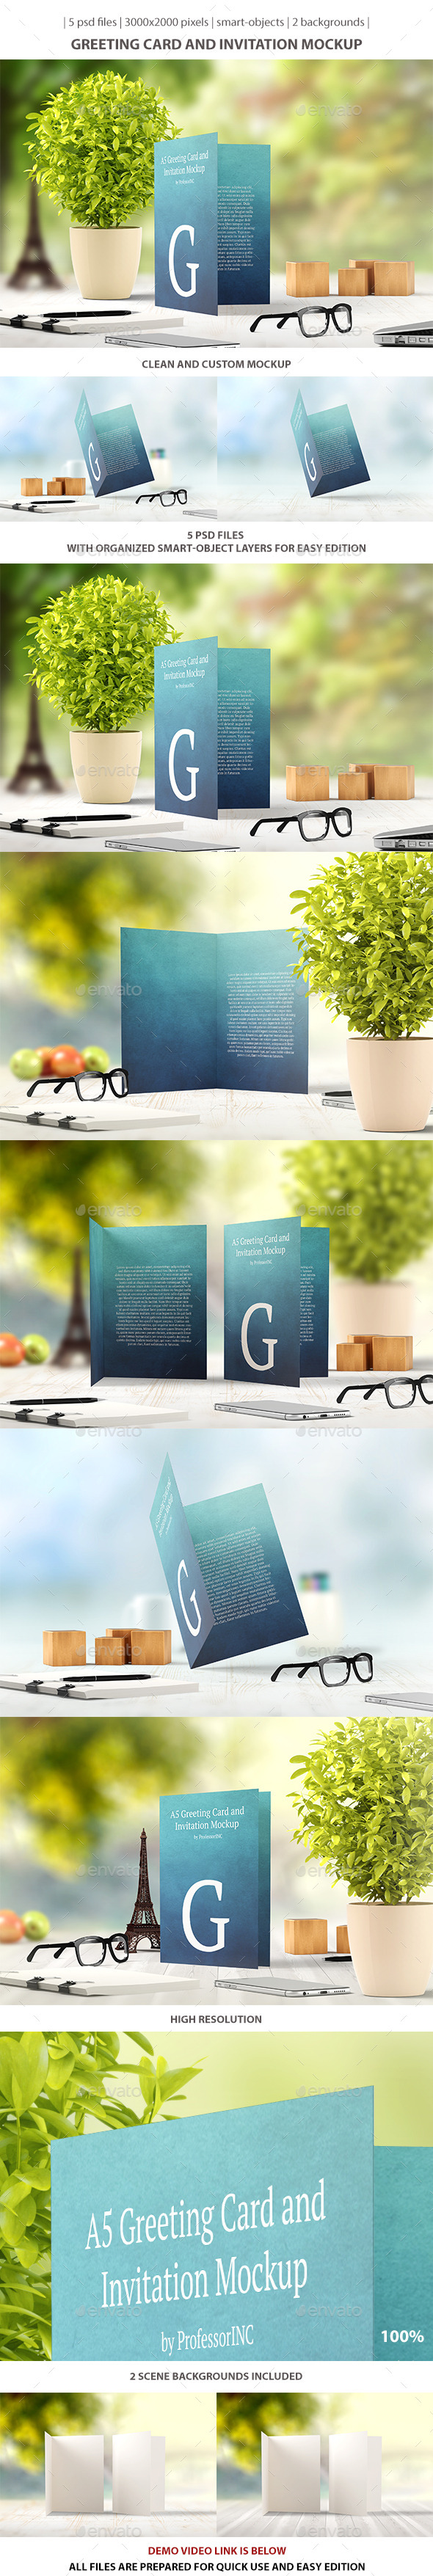 Greeting Card and Invitation Mockup - Miscellaneous Print